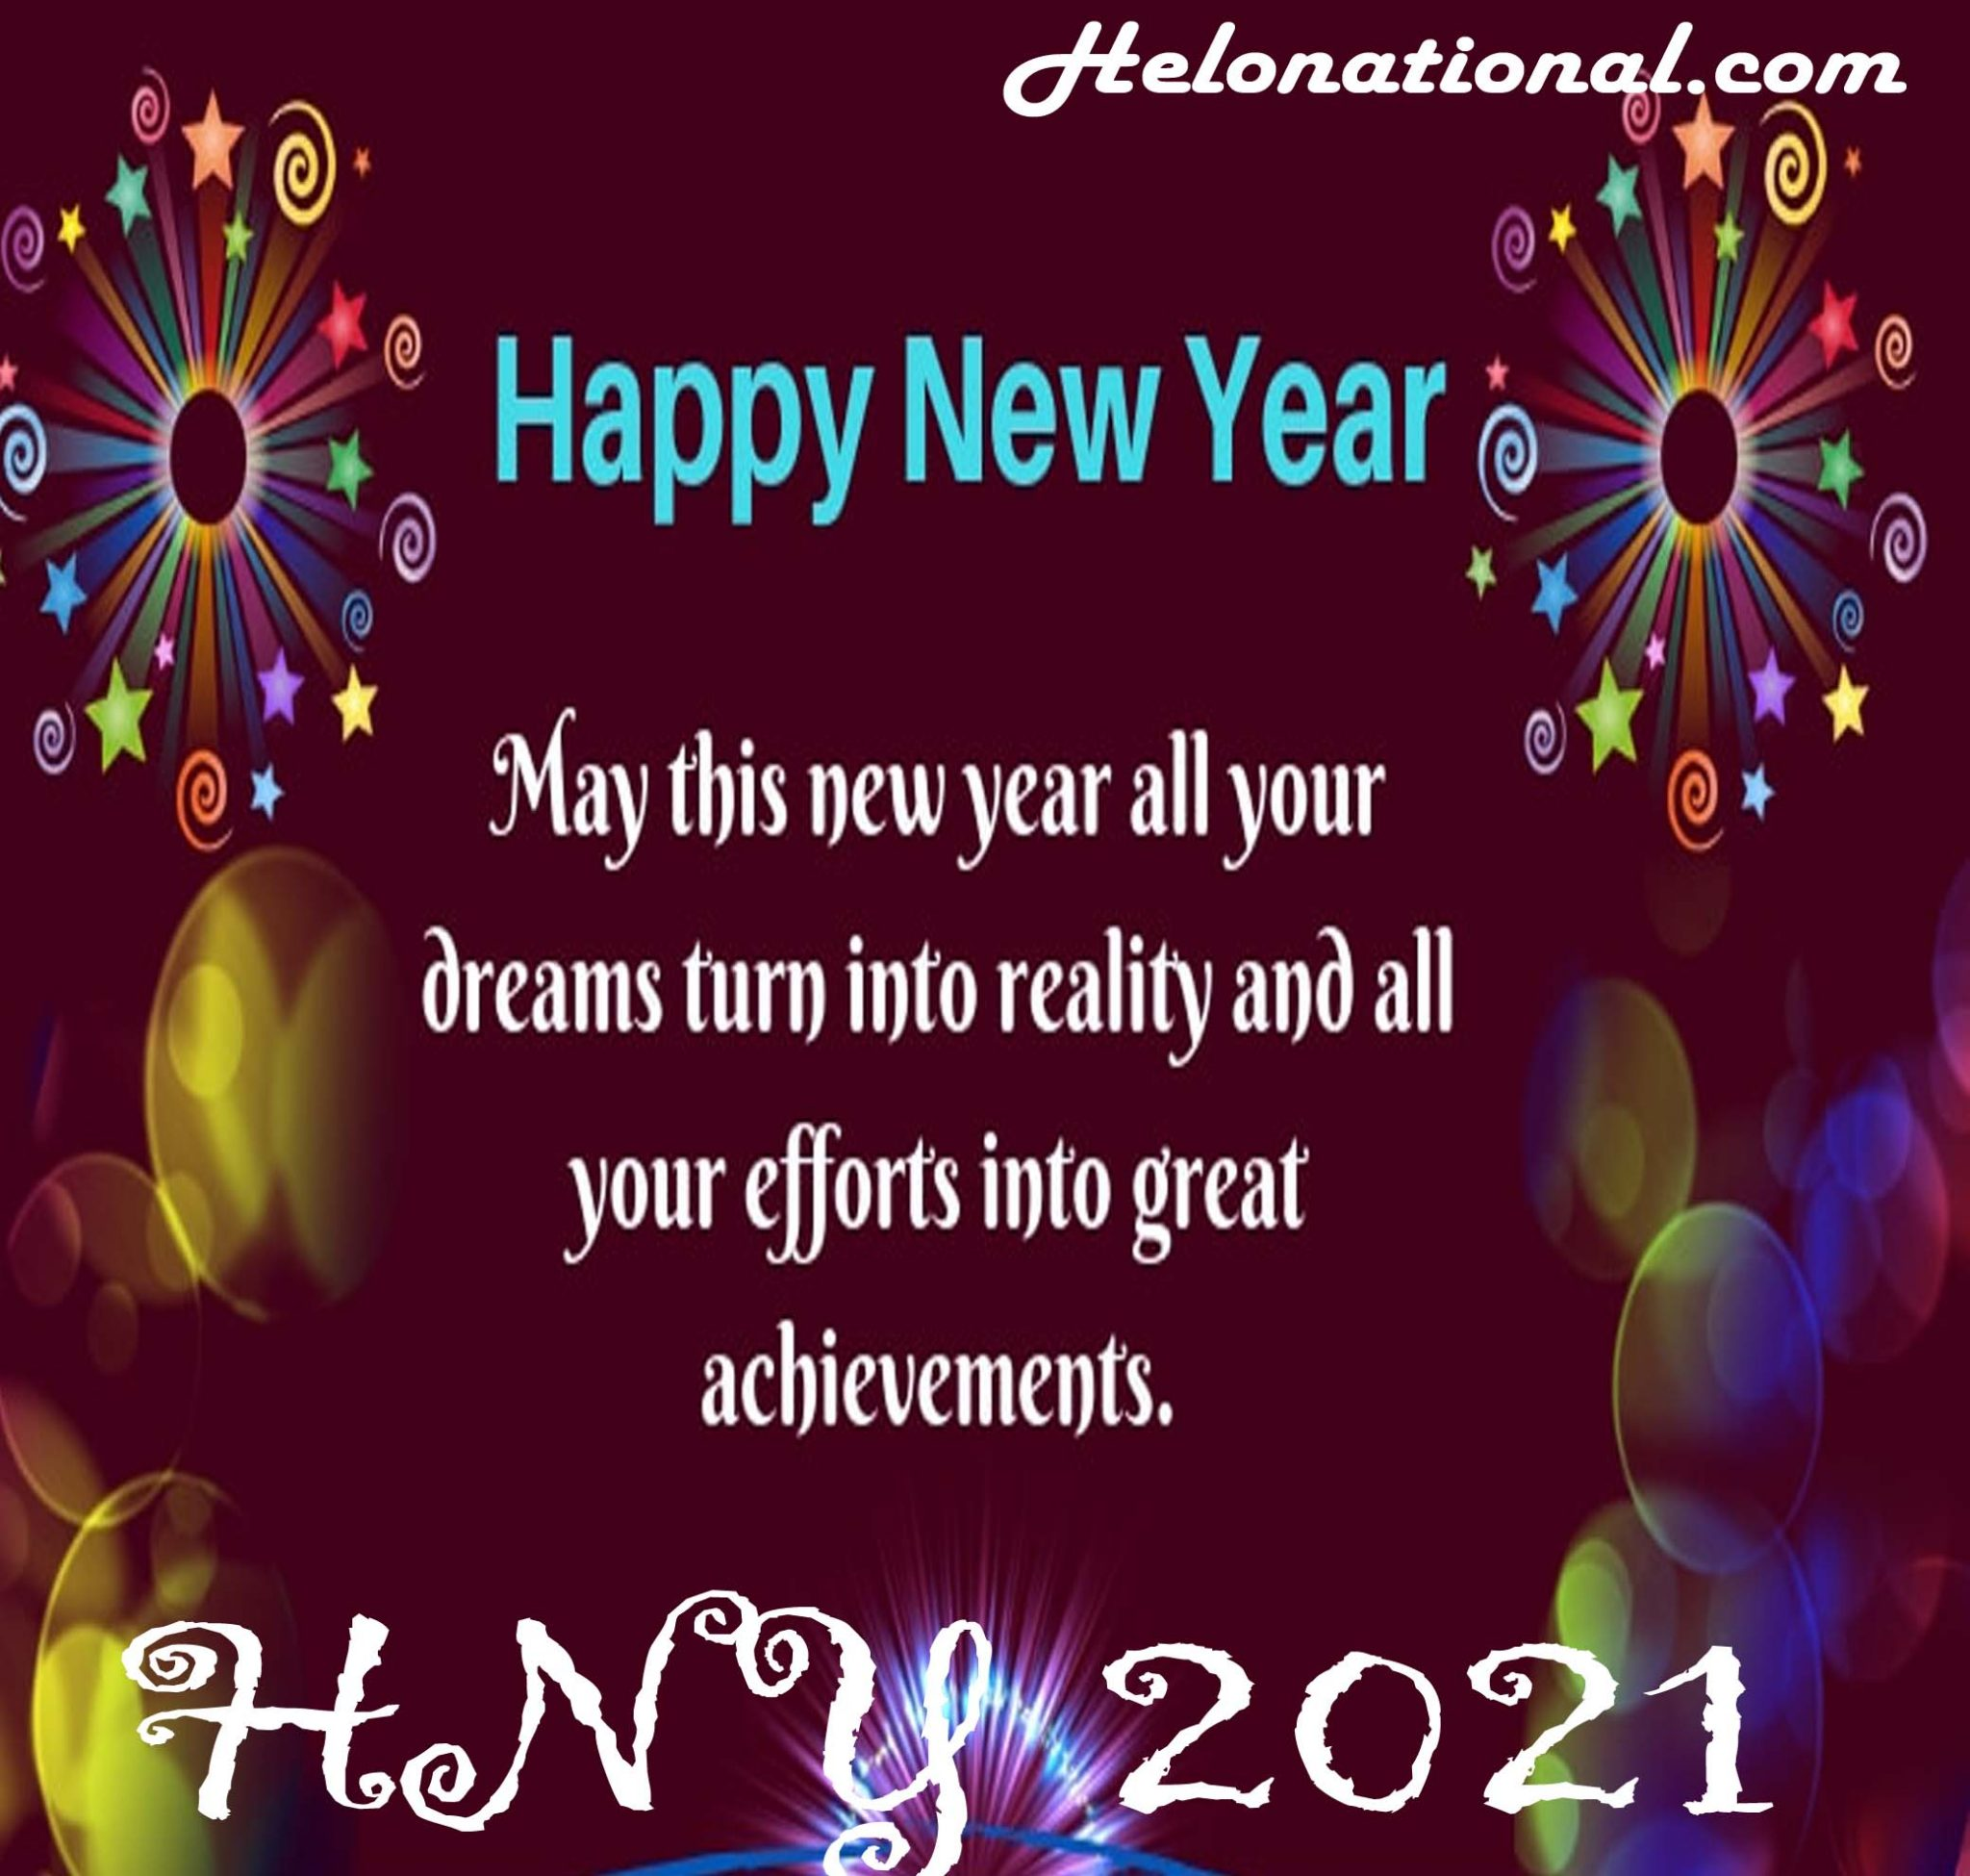 Get Happy New Year 2021 Quotes Images Wishes Hny 2021